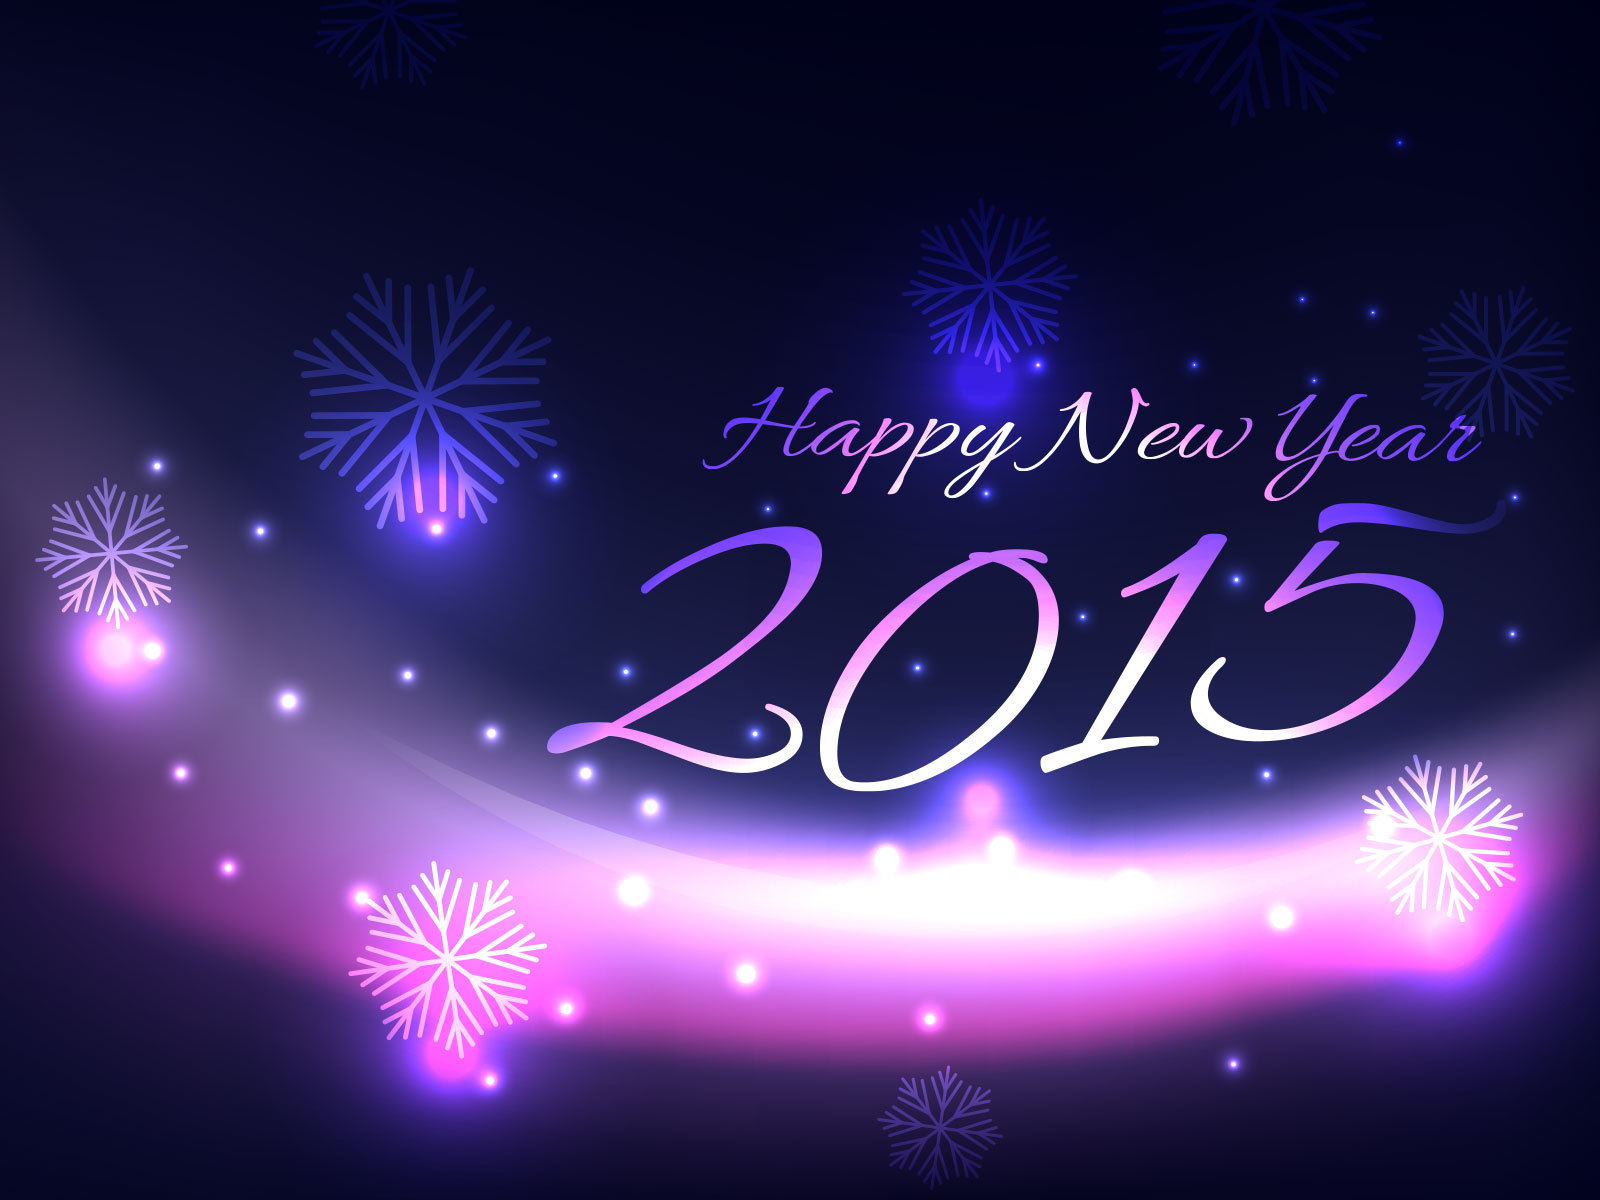 50] Happy New Year 2015 Desktop Wallpapers on WallpaperSafari 1600x1200